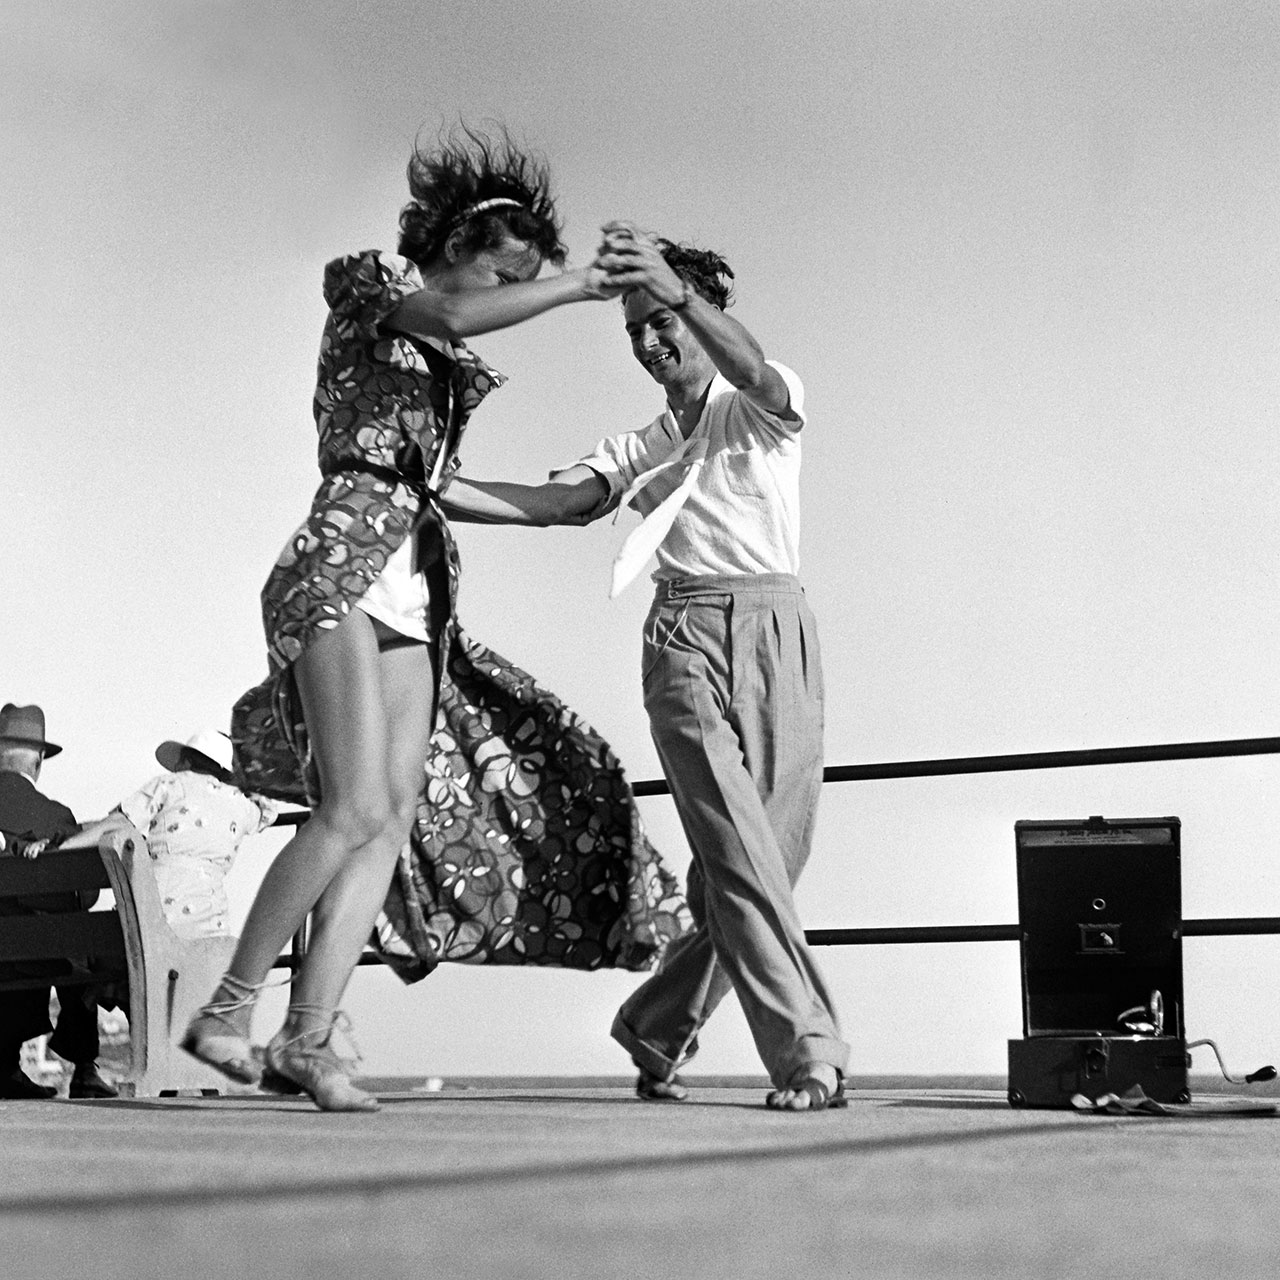 George Caddy dancing with unidentified woman to a portable gramophone, 20 January 1940. (Digital ID: a2391042)